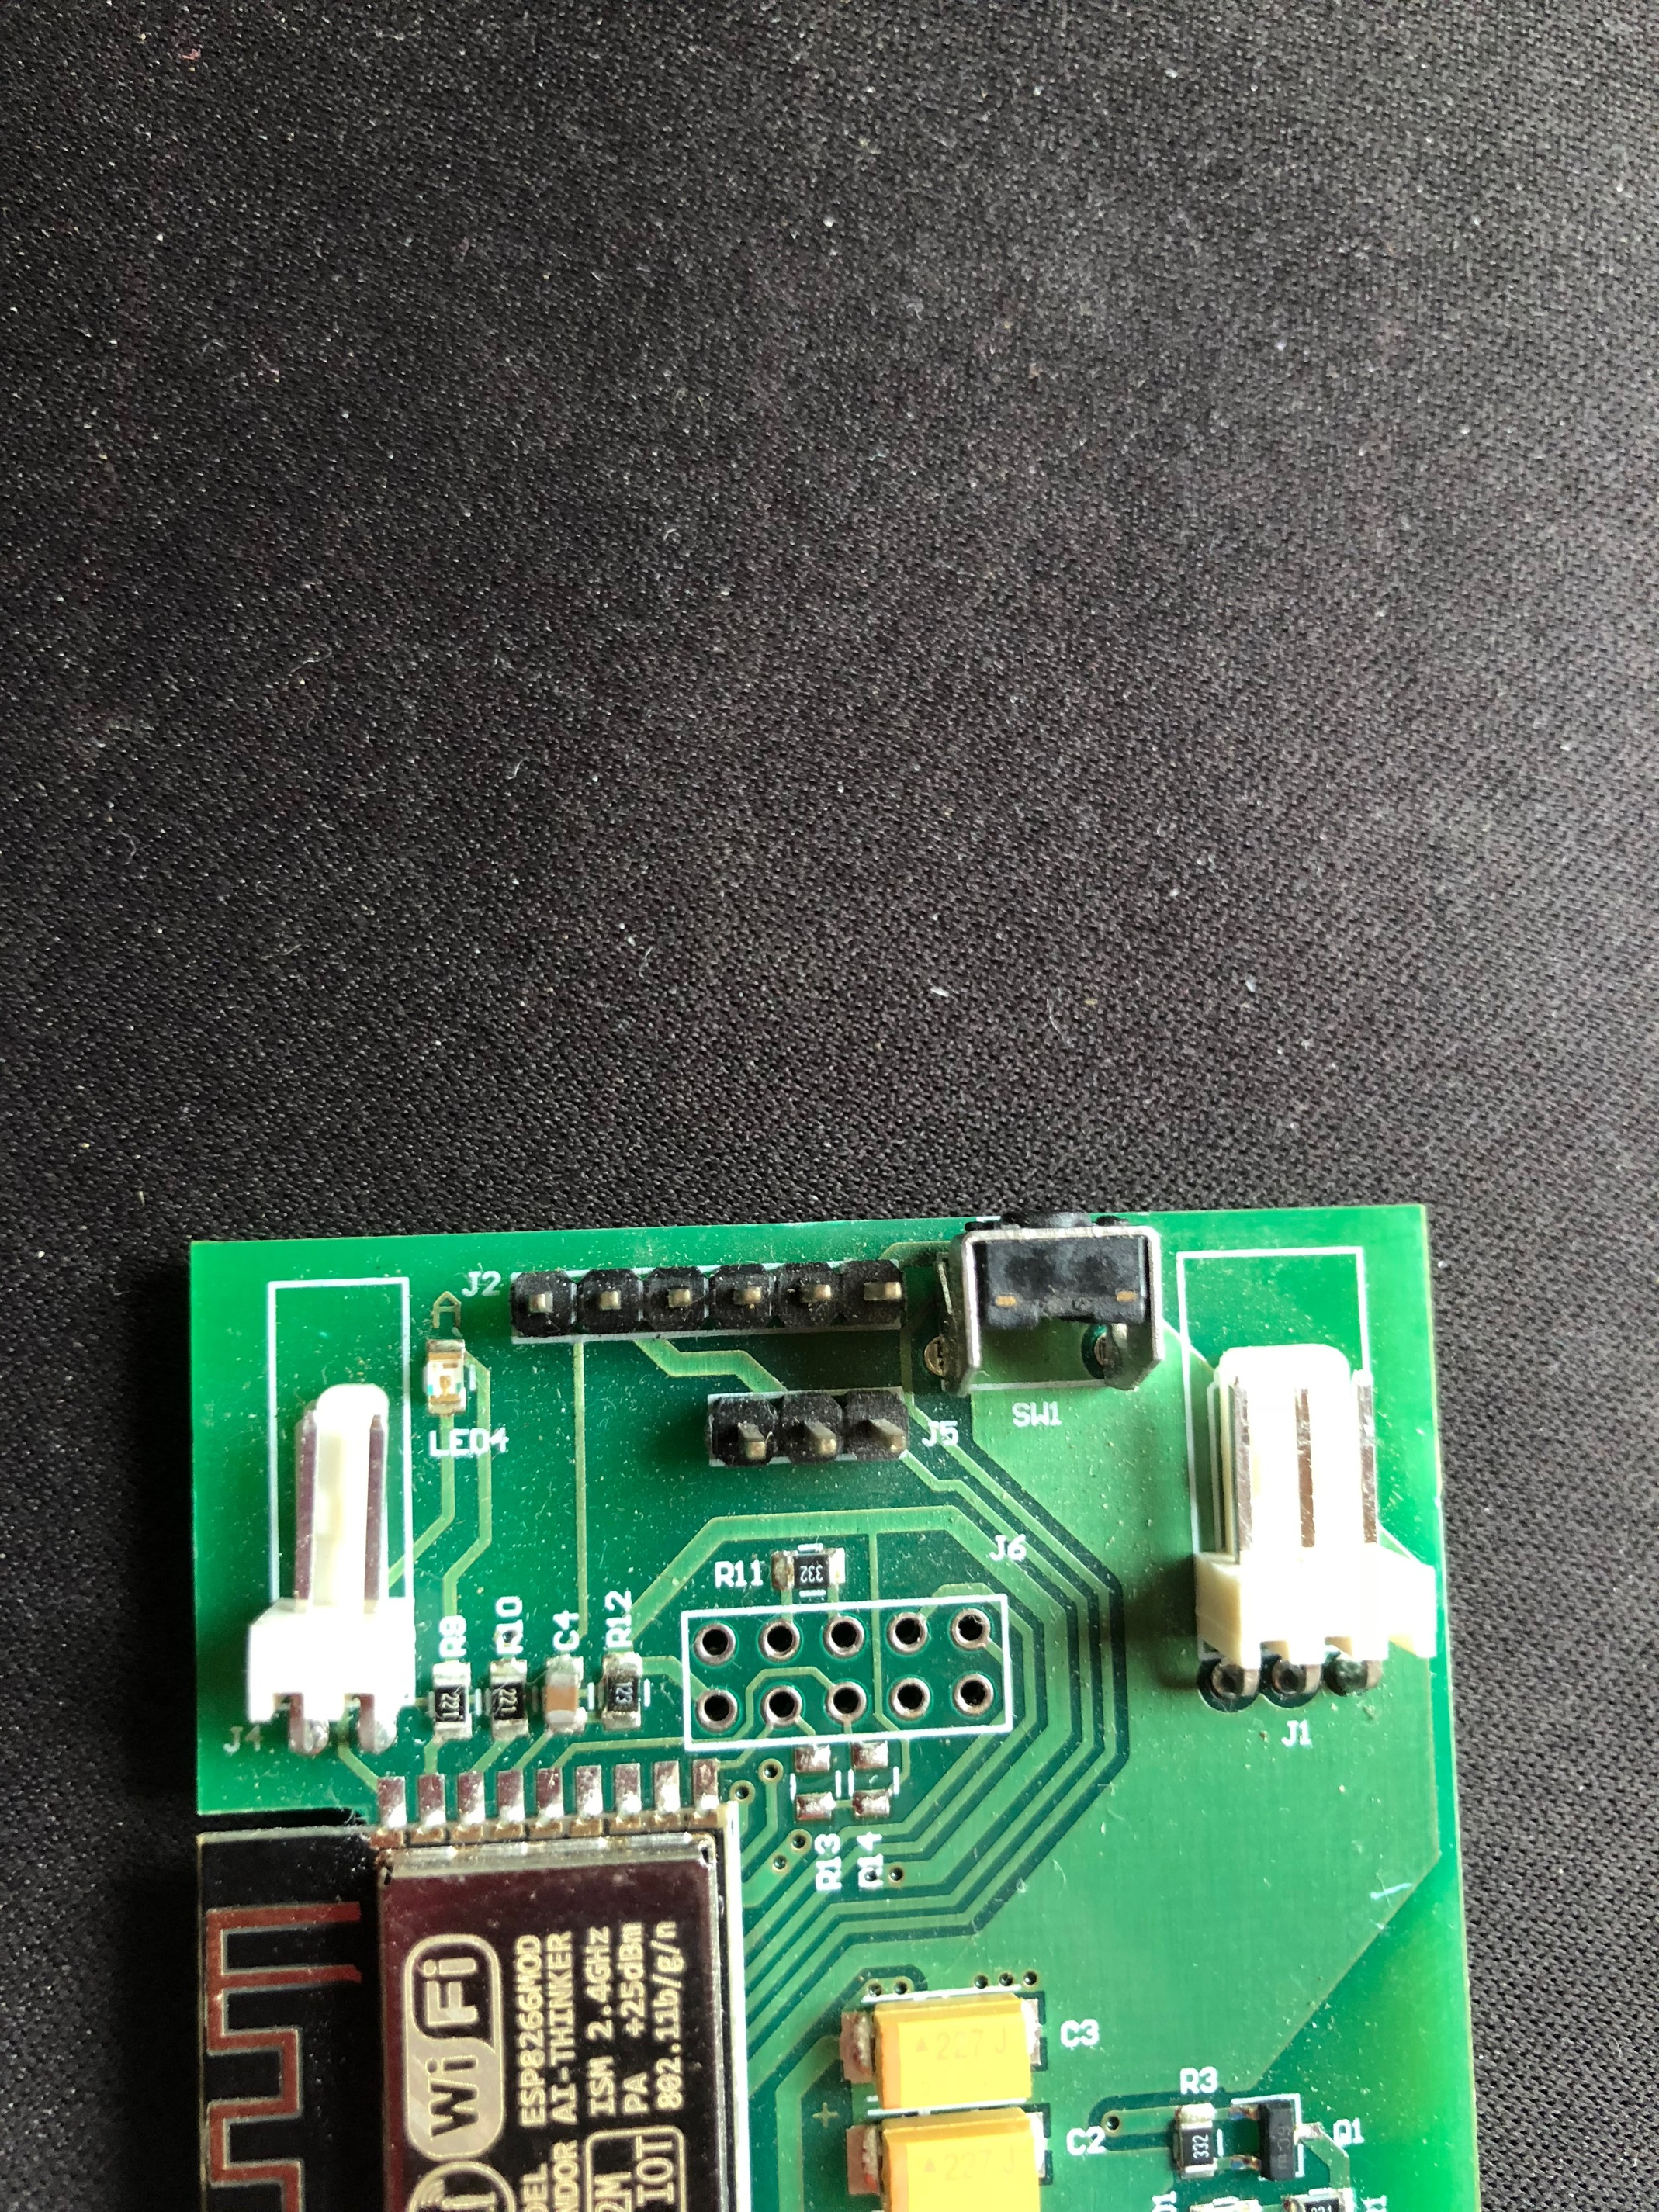 Can someone confirm the pin connections for the FTDI